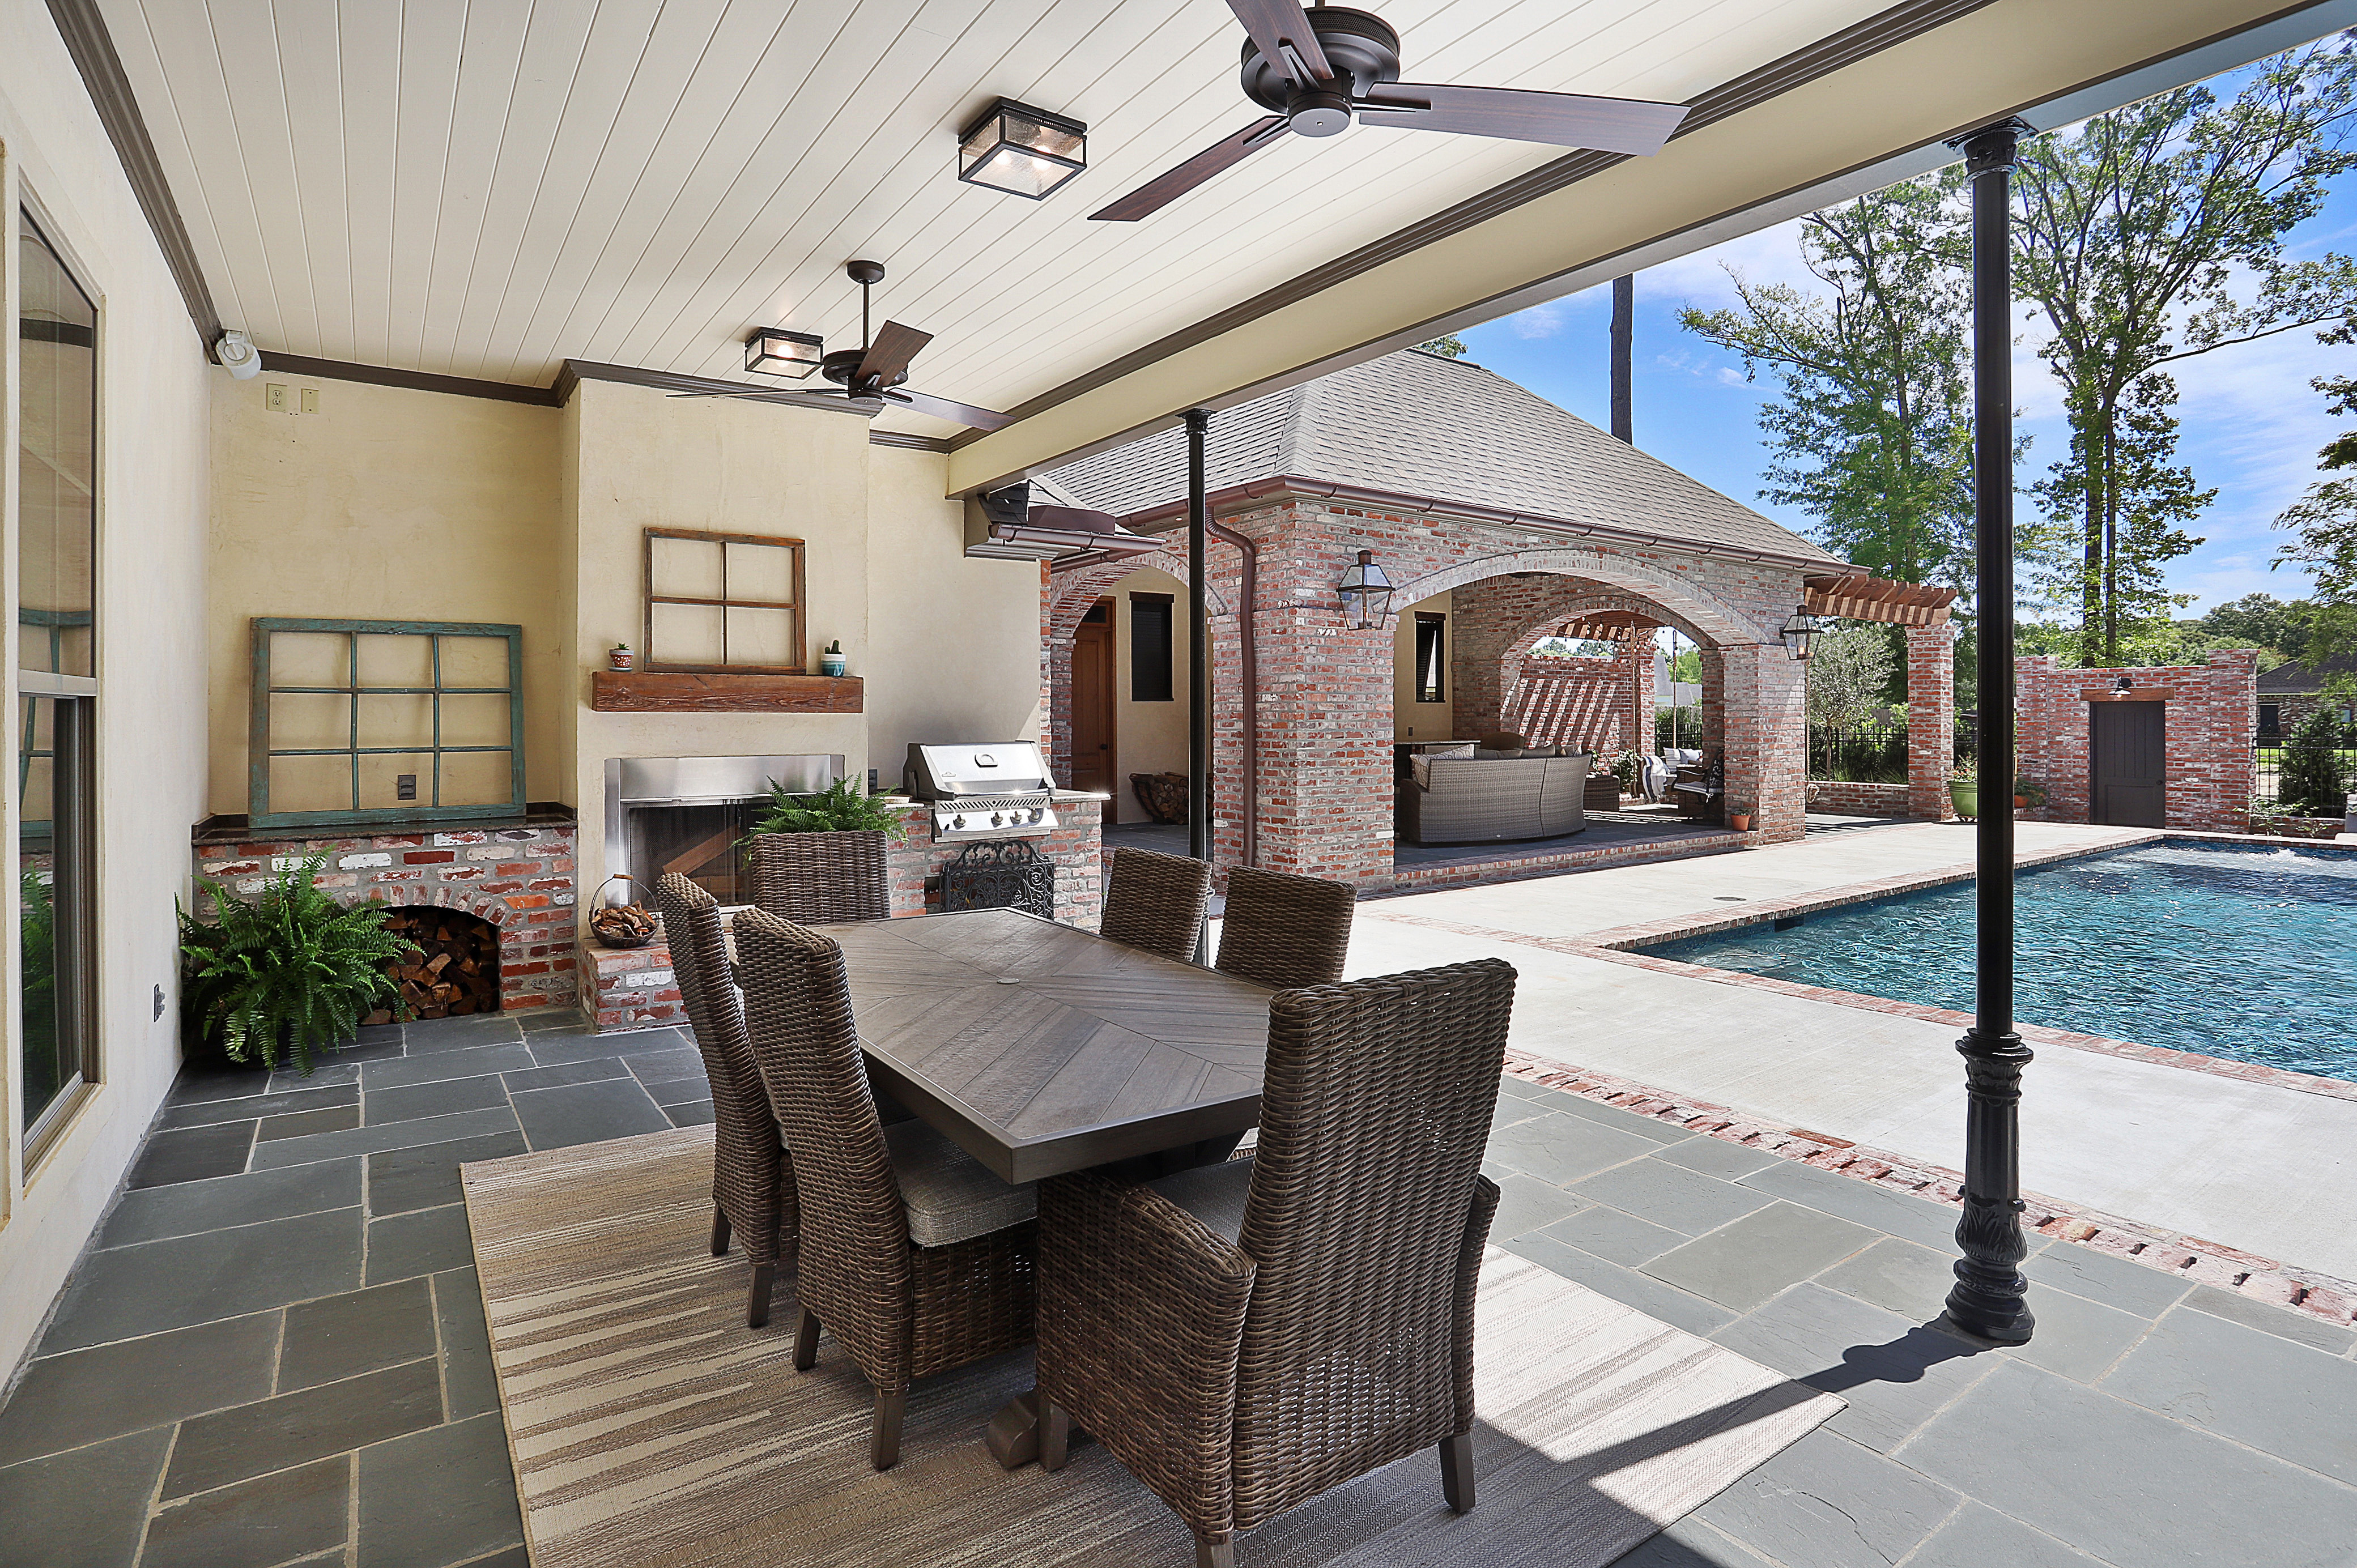 Outdoor dinning and pool area